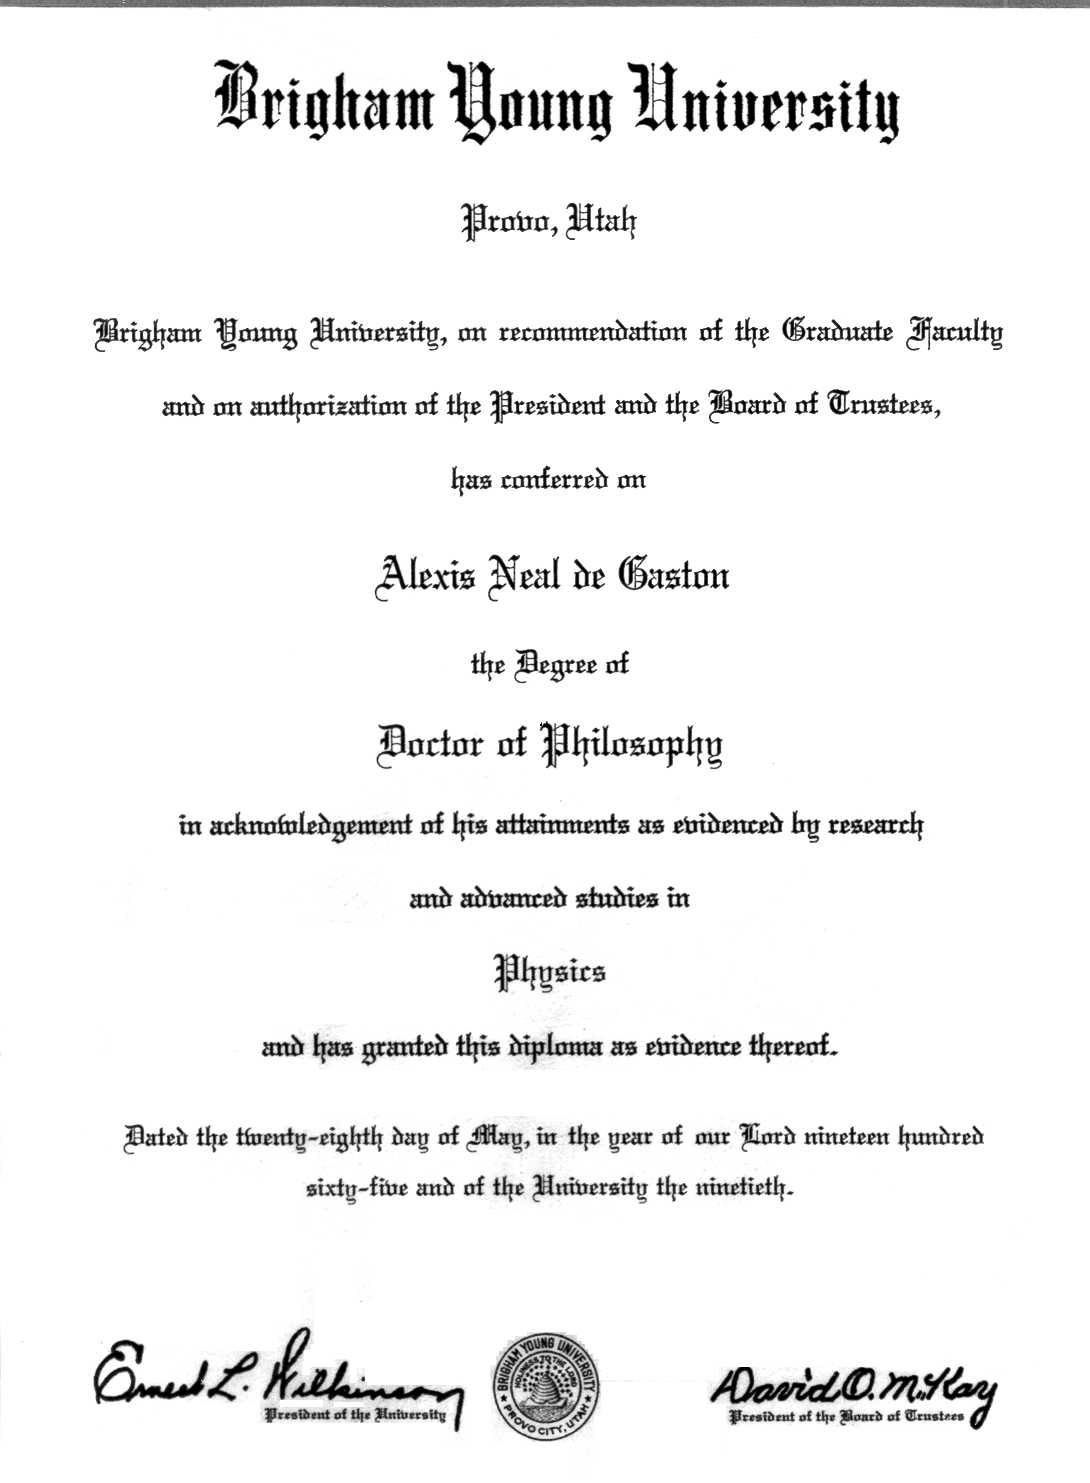 resume of a neal de gaston brigham young university ph d distinction physics 1965